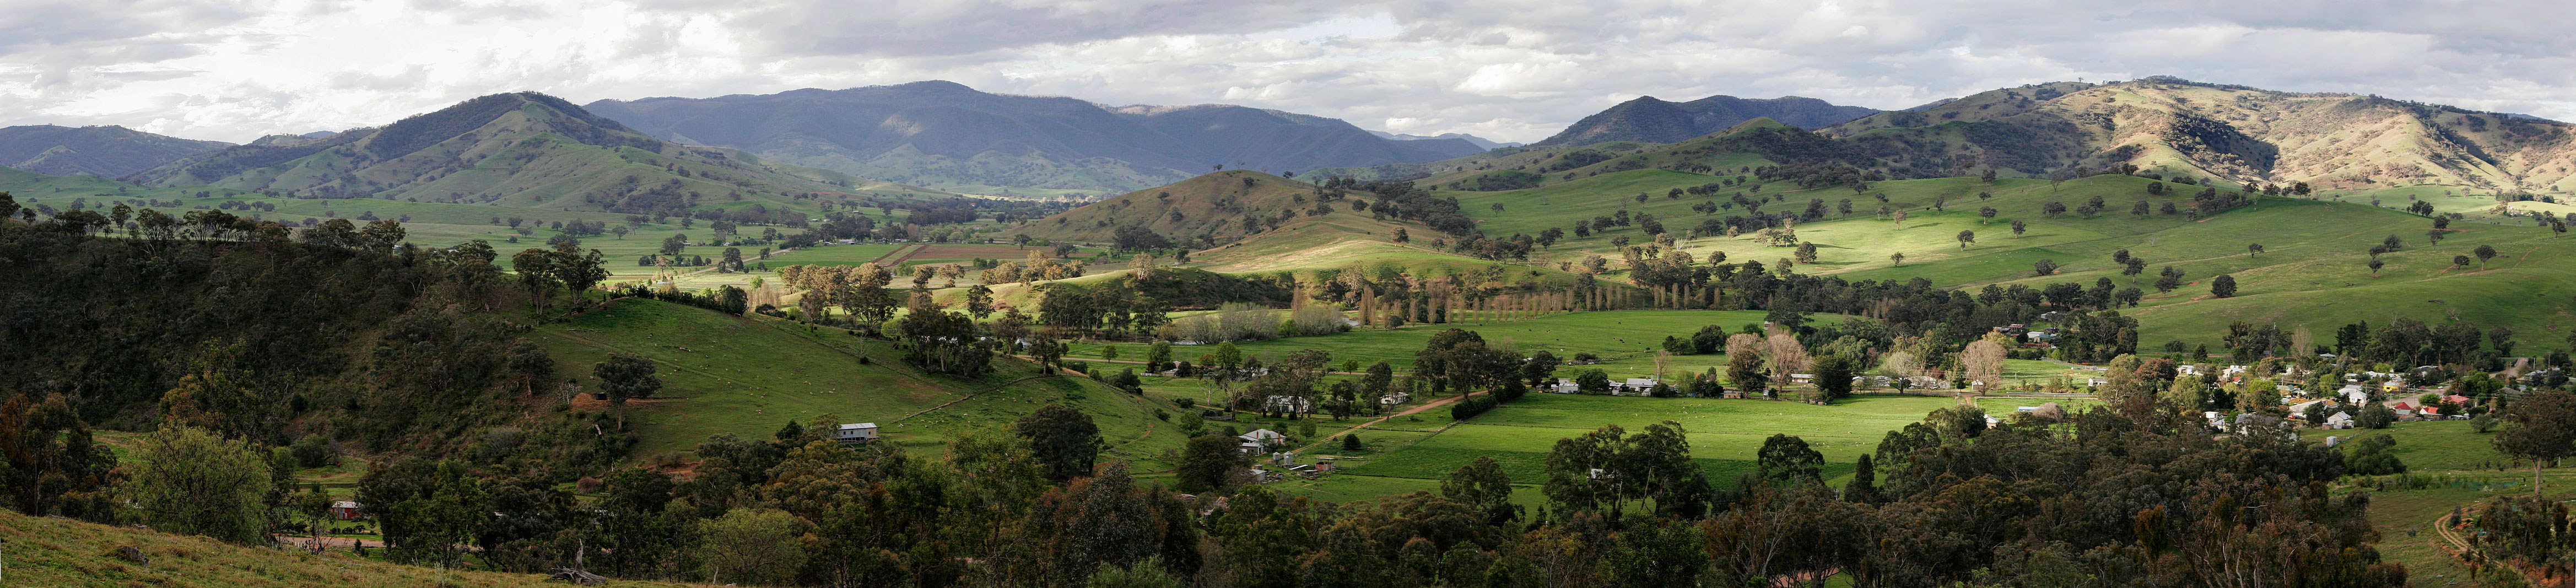 Swifts_creek_township_and_surrounding_hills_panorama